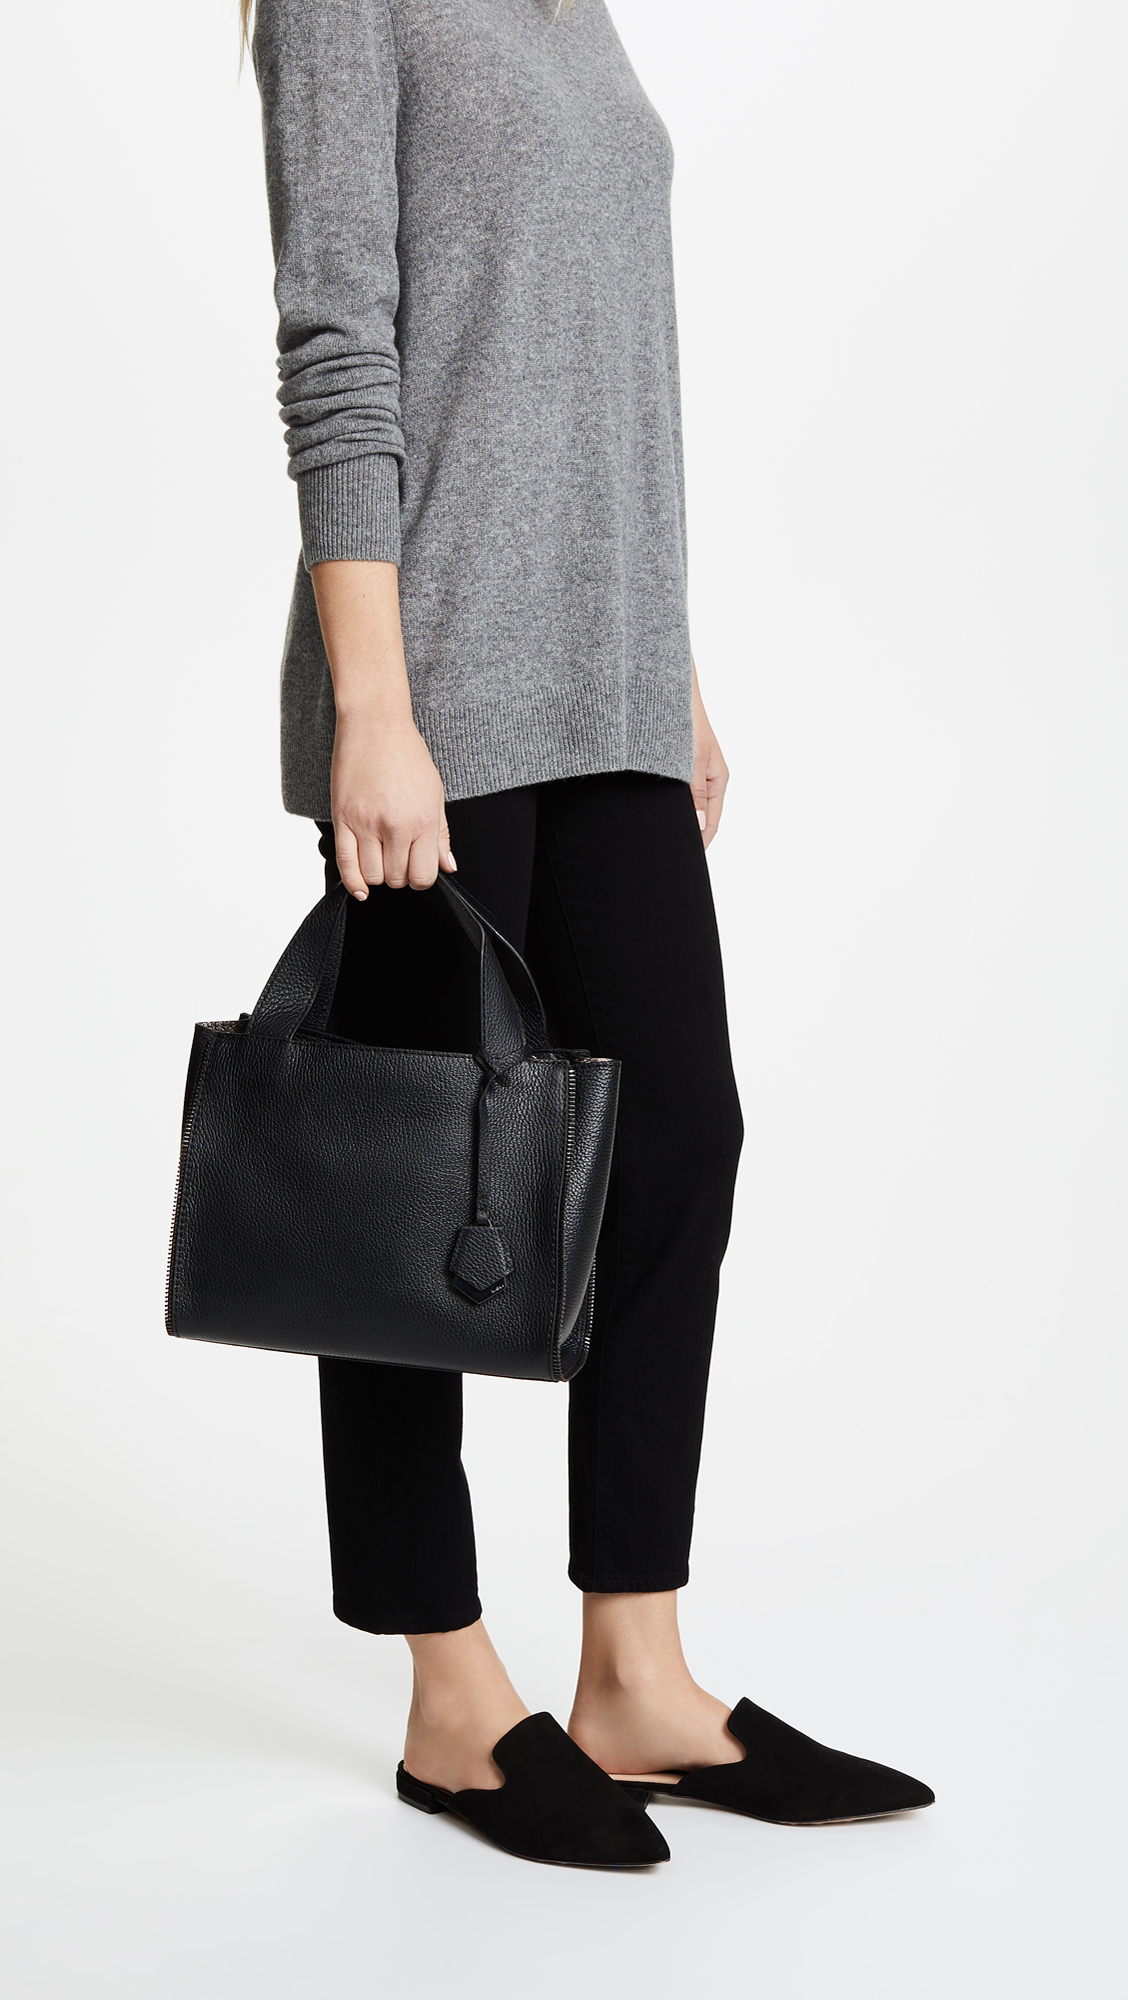 5119d766c72016 Botkier Fulton Small Tote